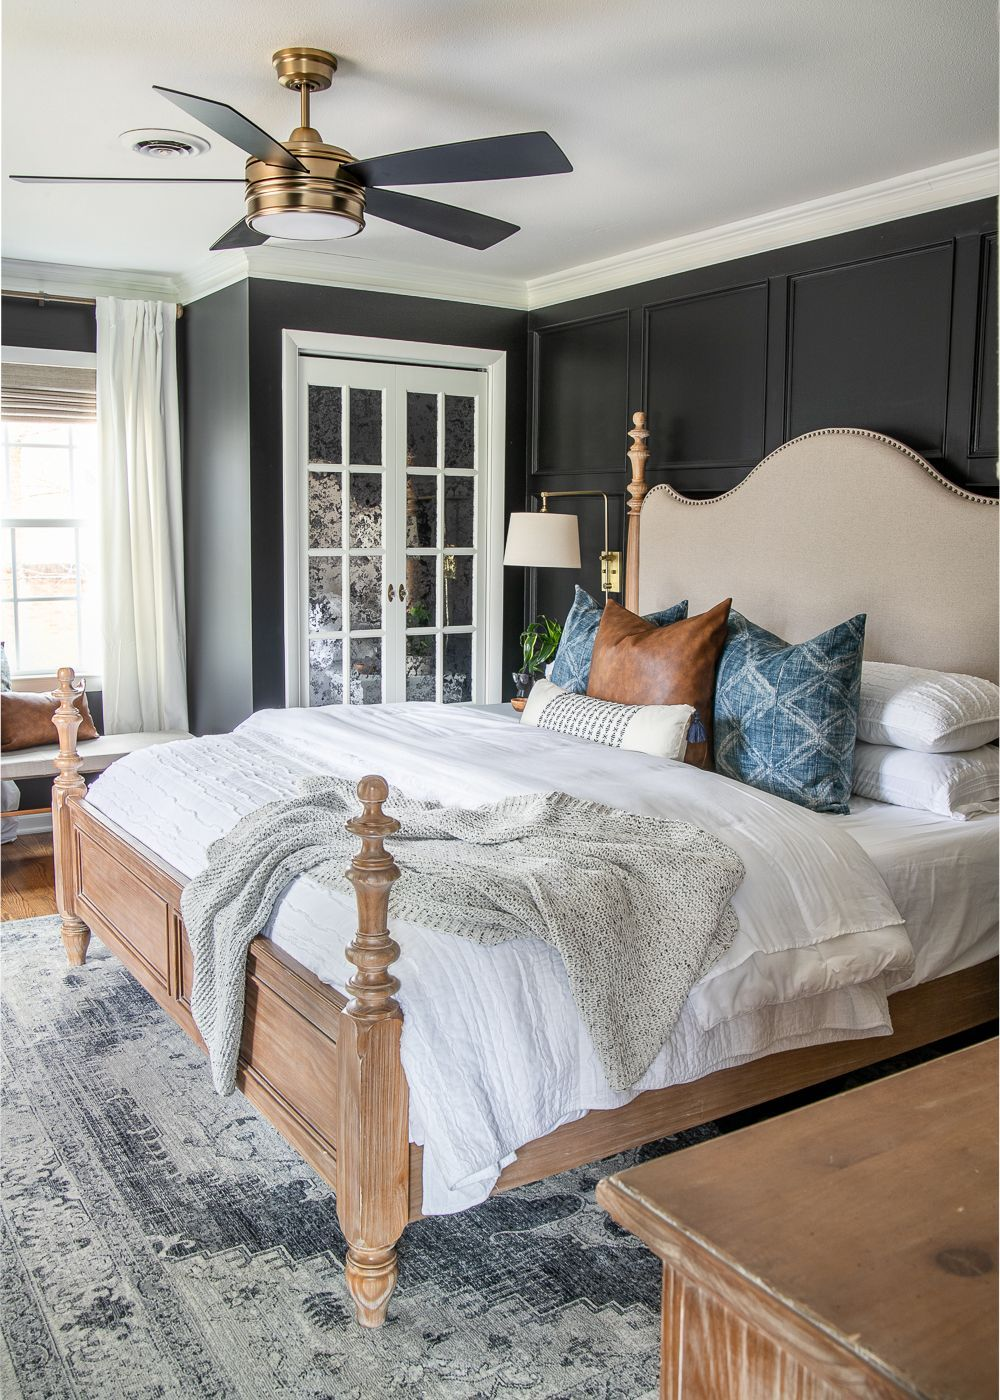 Romantic Home Decor A plain, dated master bedroom gets a